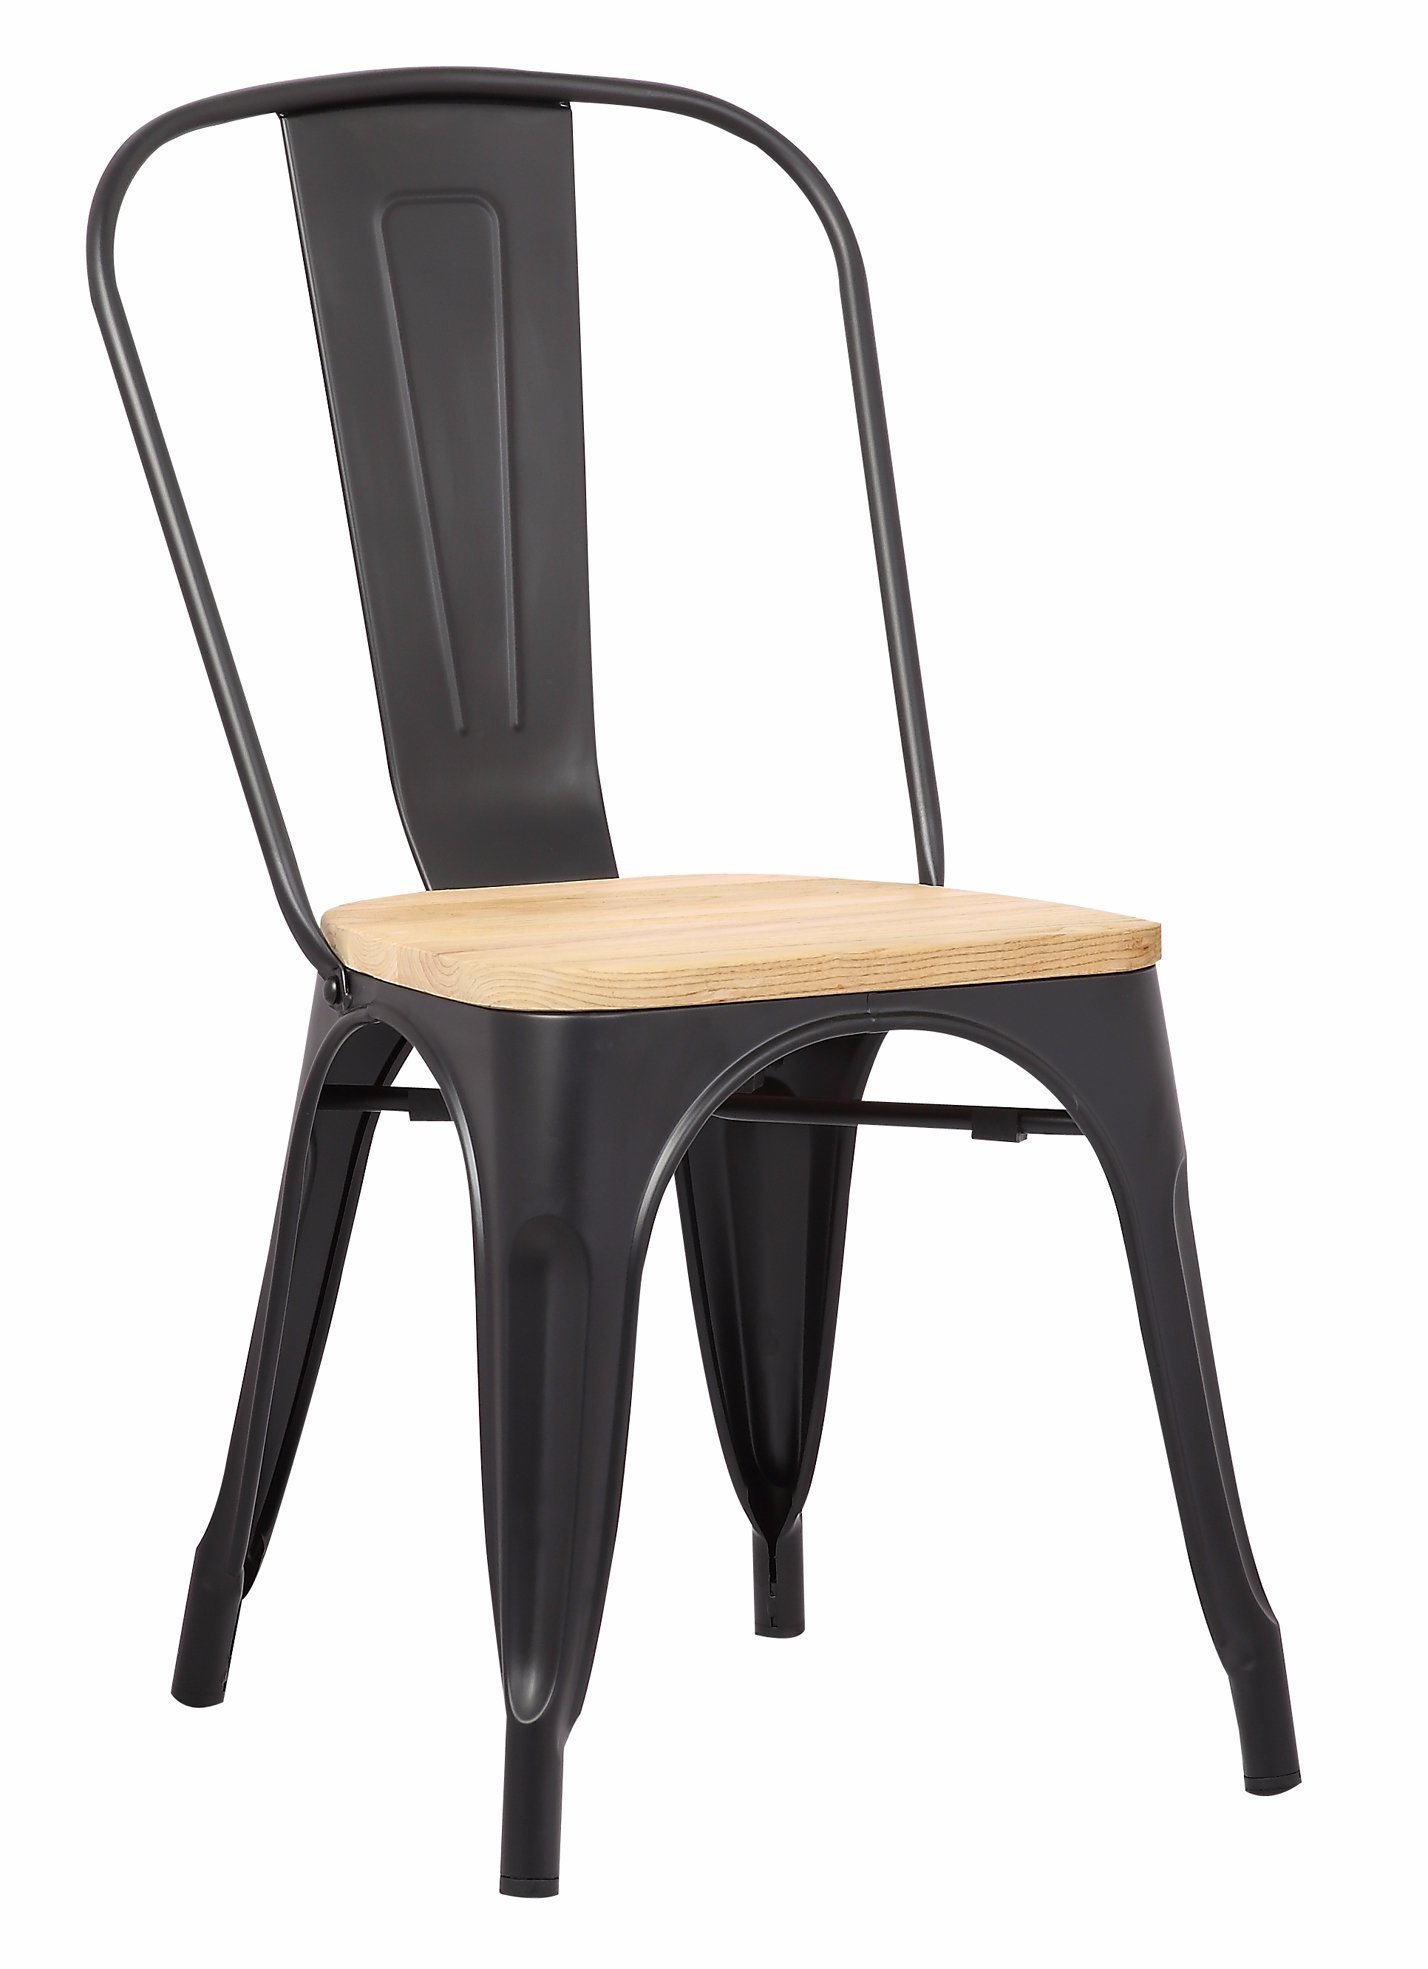 Hot Item Tolix Chair Metal Chair Gray Wooden Seat Tolix Style Metal Indoor Outdoor Stackable Chairs With Back